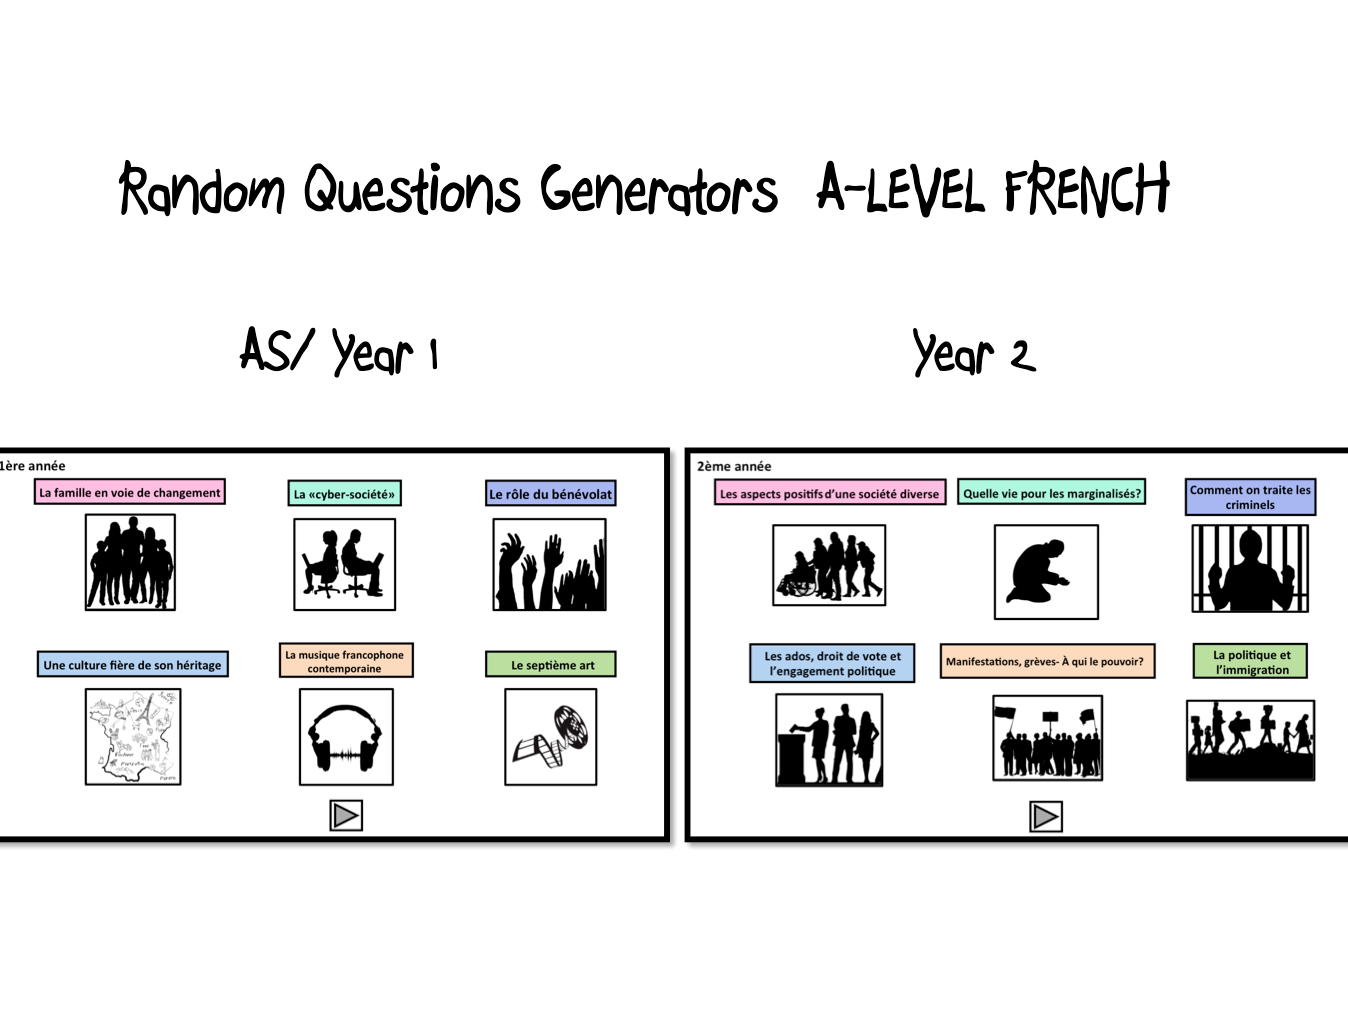 Speaking Questions- Random Questions Generators- year 1/AS and Year 2